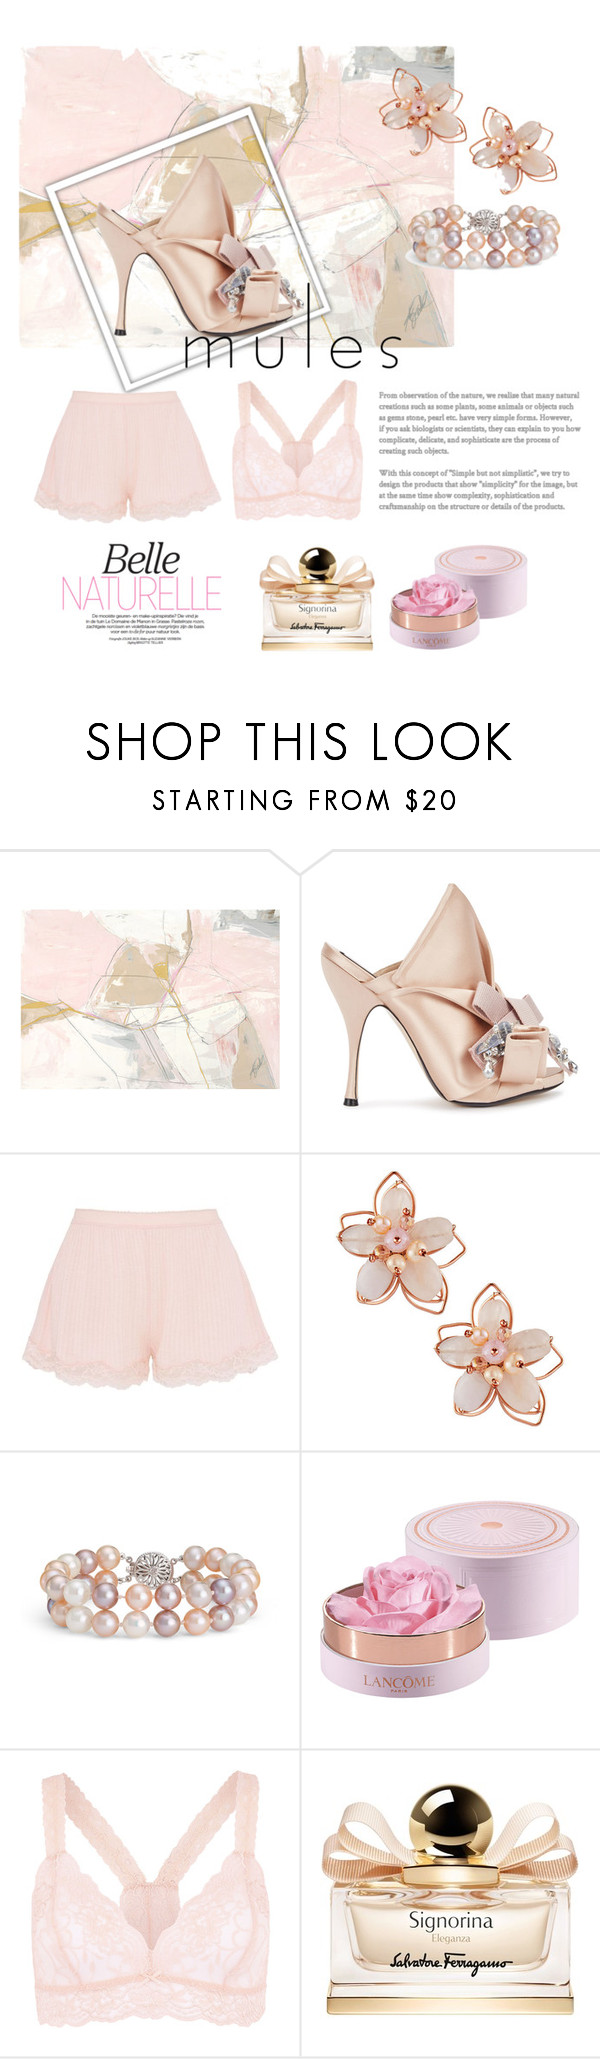 """""""Natural Beauty"""" by martina-b33 ❤ liked on Polyvore featuring N°21, STELLA McCARTNEY, NAKAMOL, Blue Nile, Lancôme, Accessorize and Salvatore Ferragamo"""